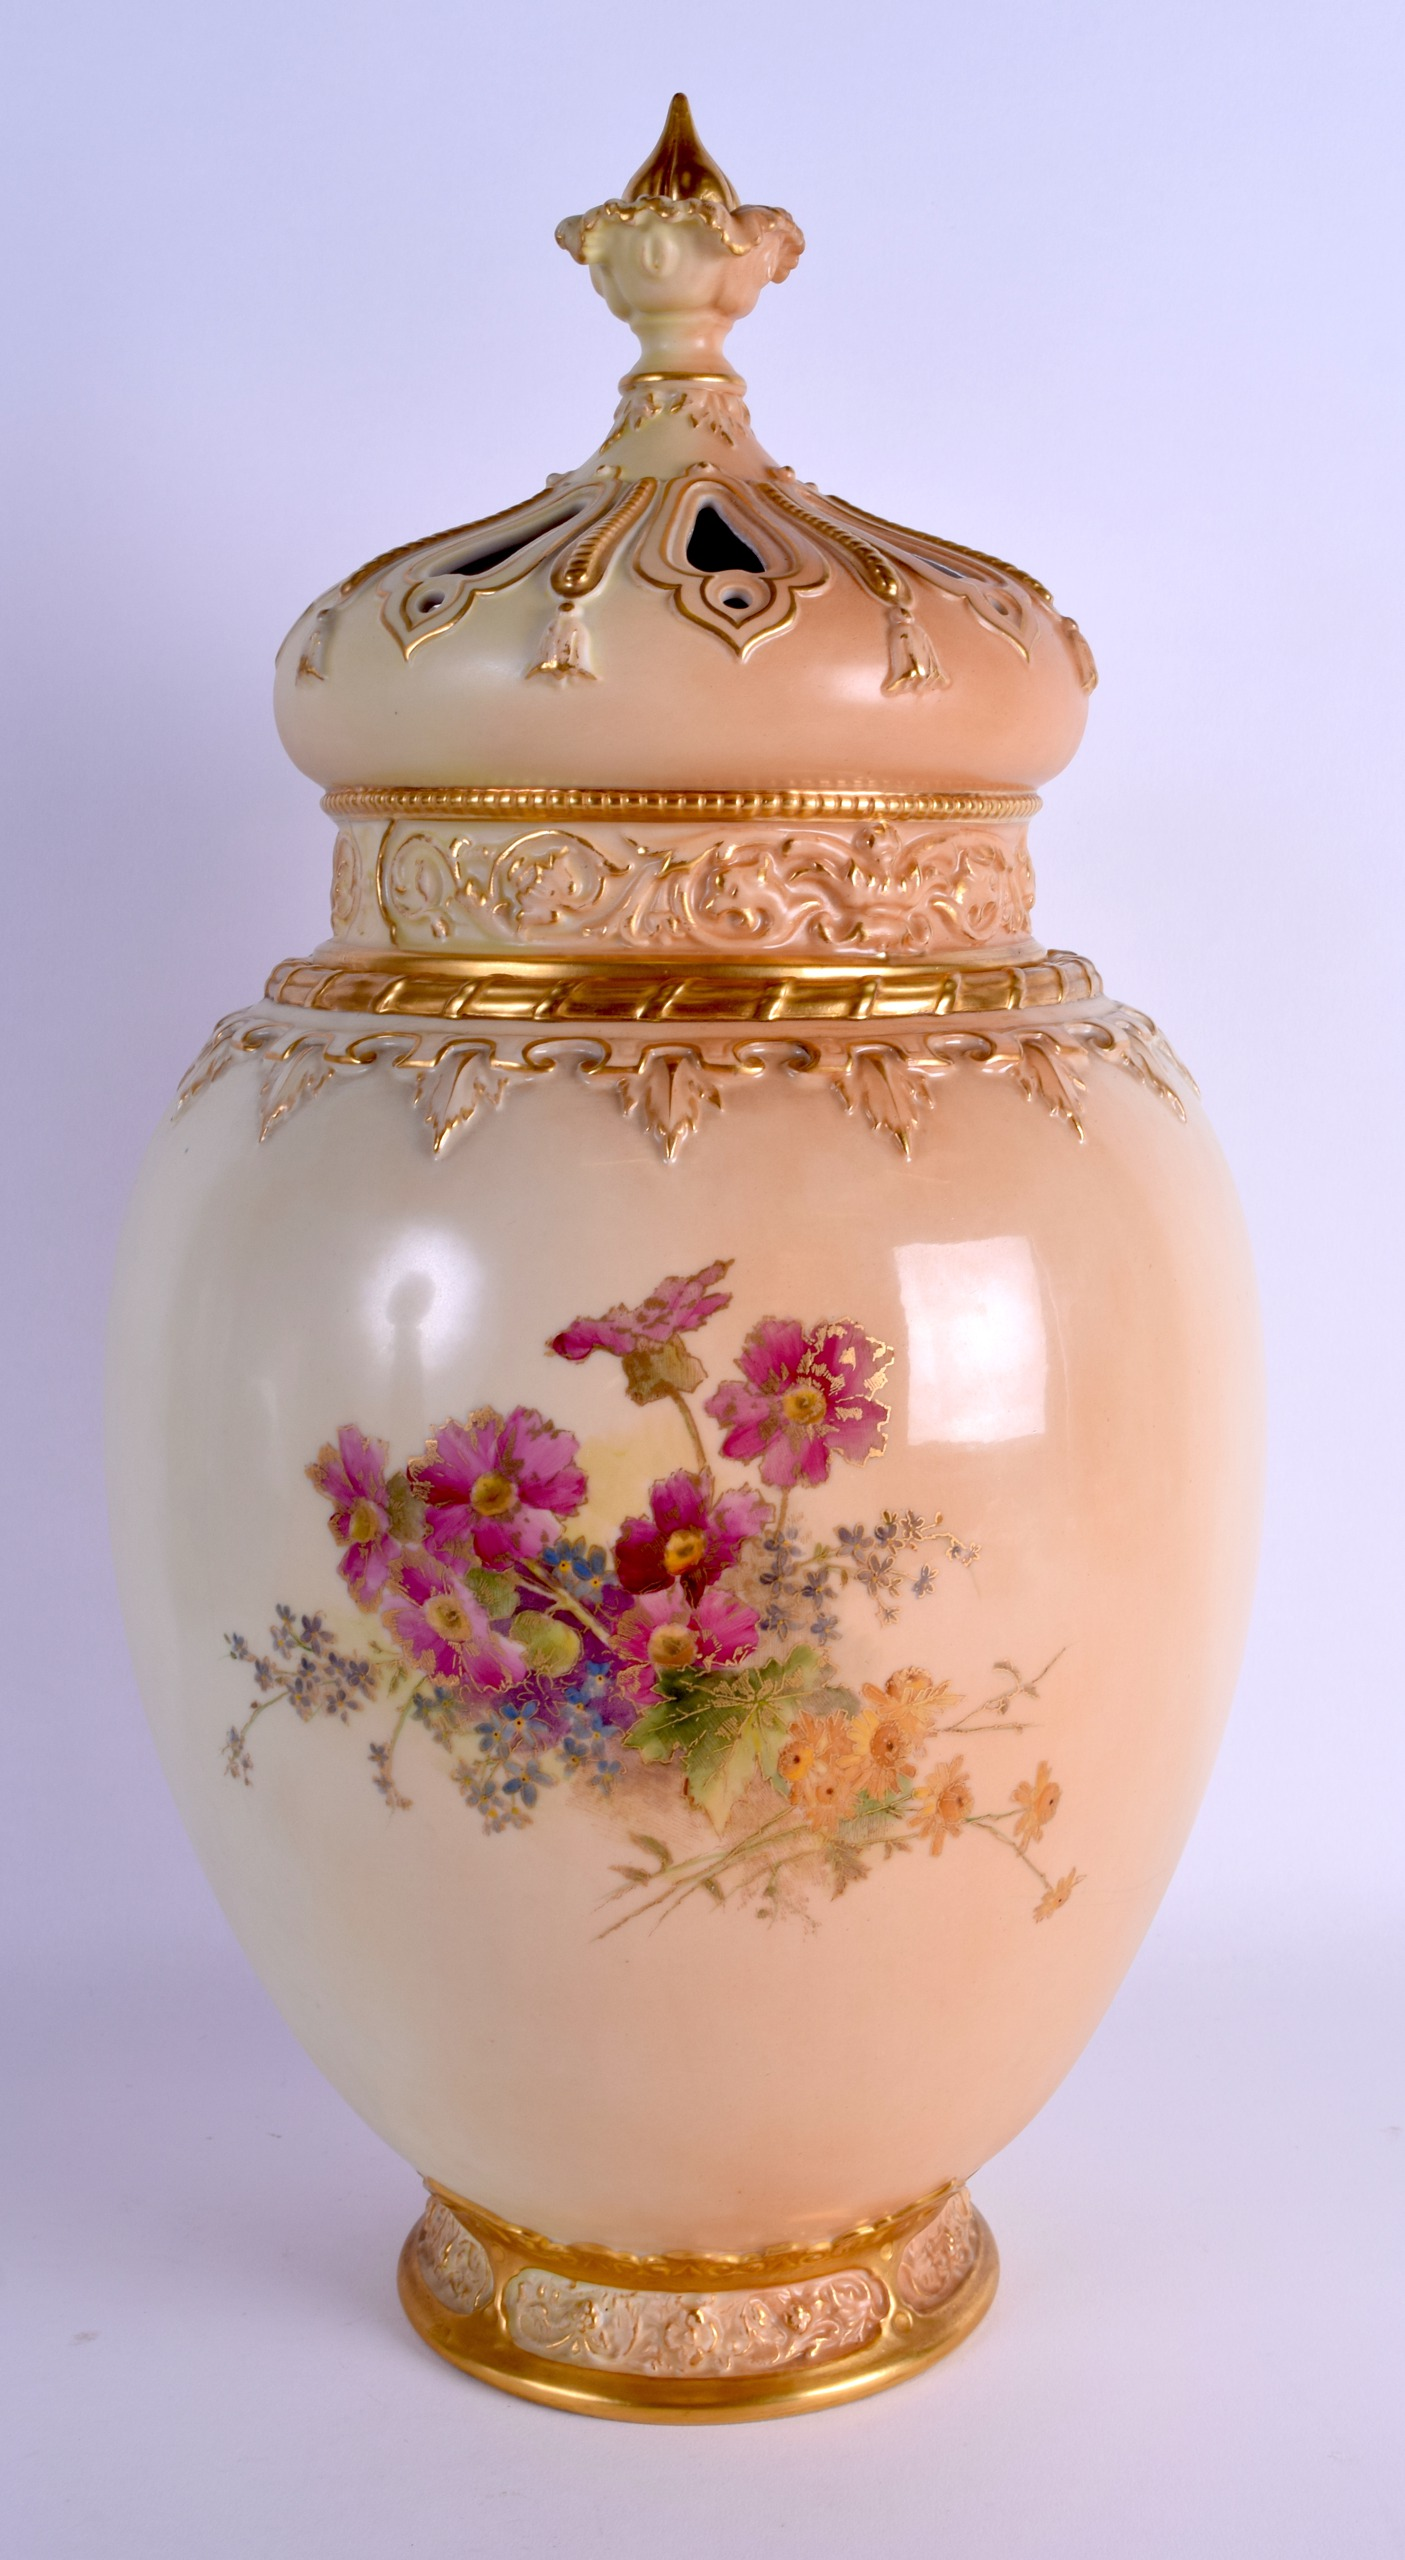 Lot 62 - A HUGE 19TH CENTURY ROYAL WORCESTER BLUSH IVORY VASE AND COVER with inner cover, finely painted with